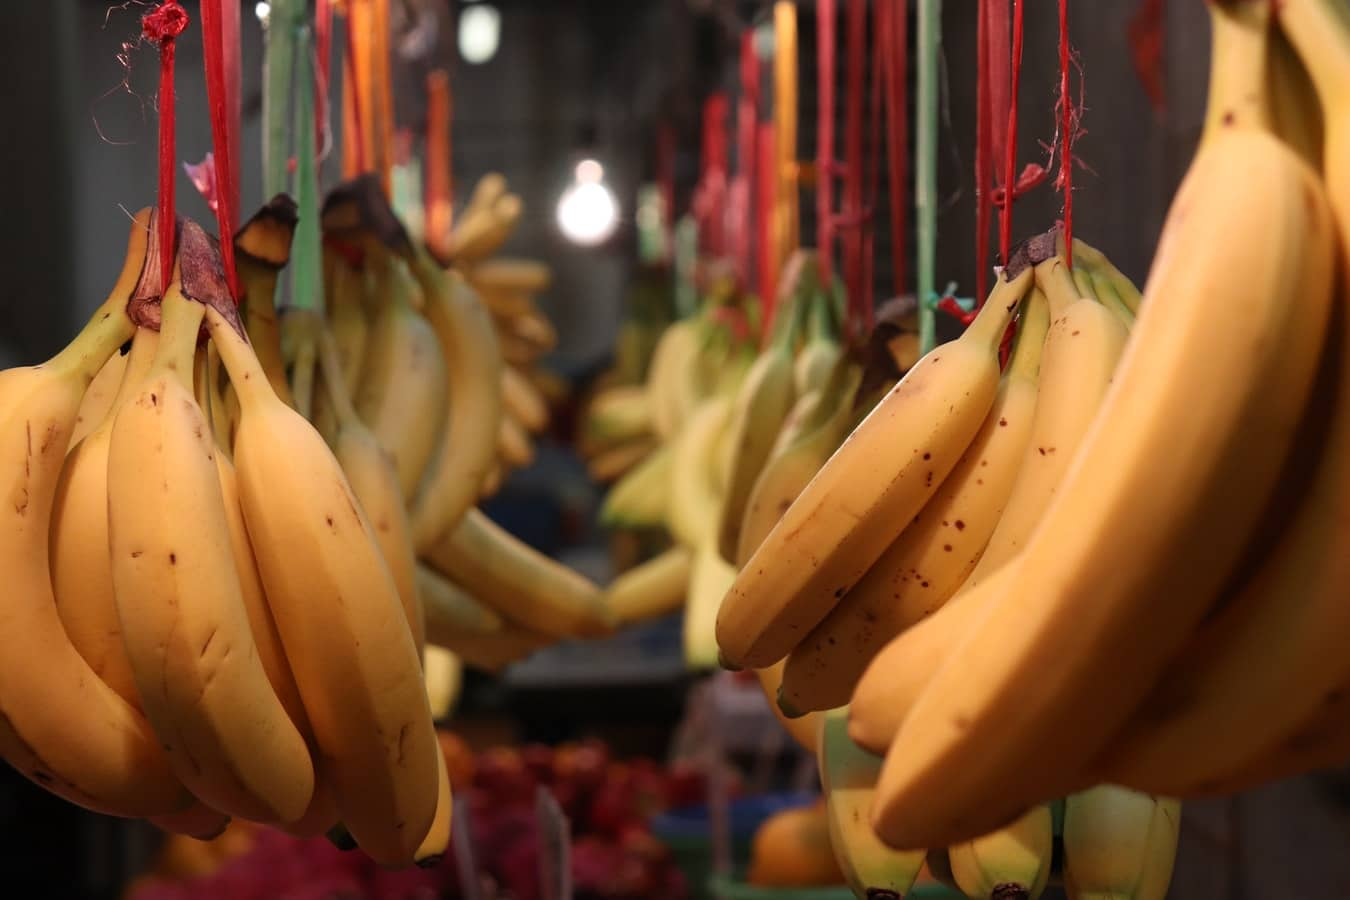 What to Conside When Buying Bananas